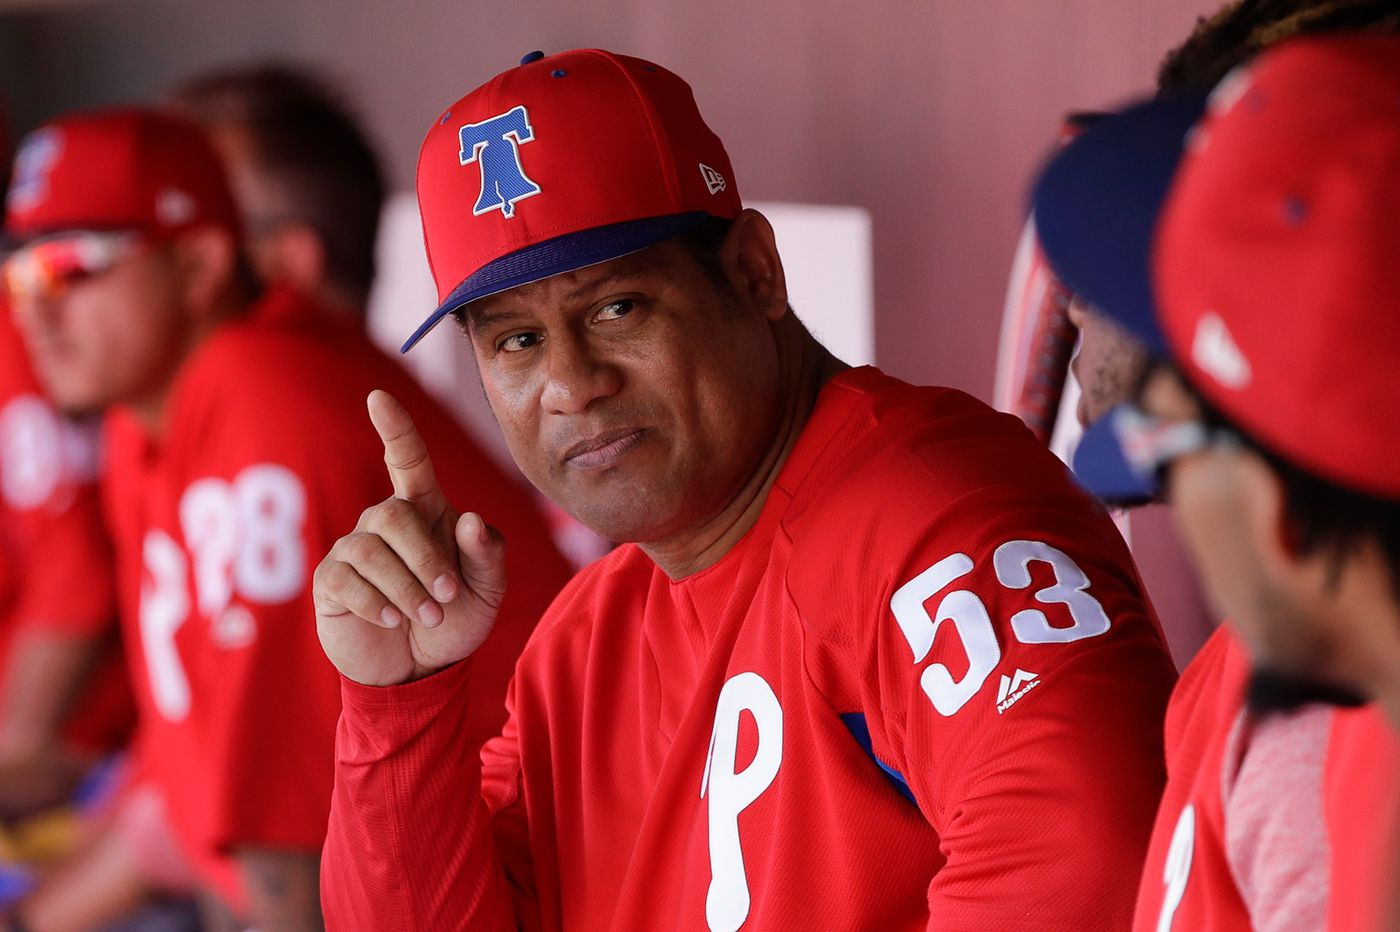 Bobby Abreu selected as Phillies' 2019 Wall of Fame inductee